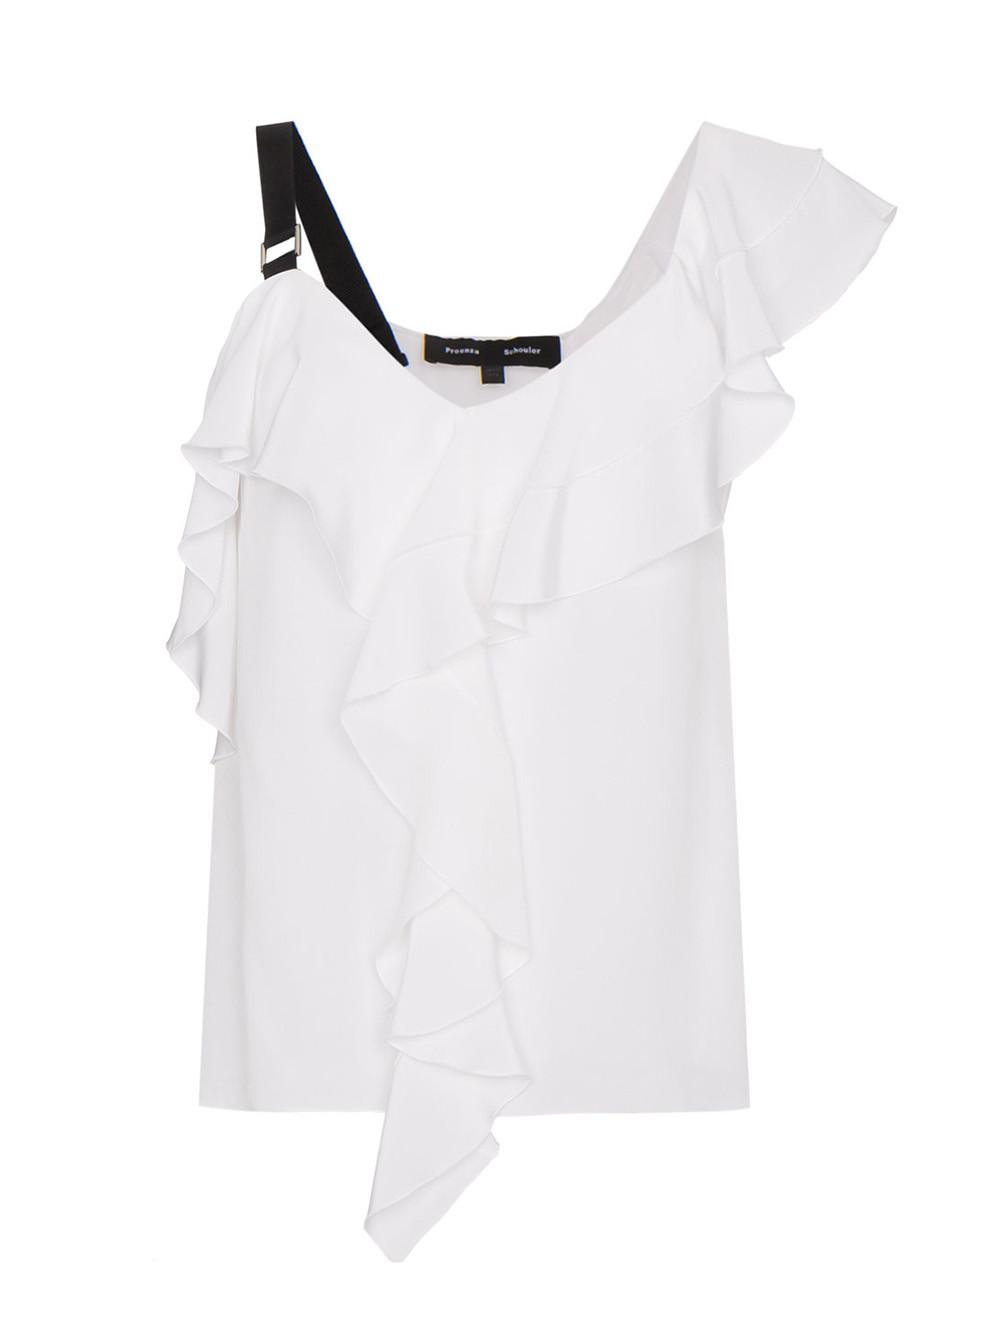 eb7767a0b071a Lyst - Proenza Schouler Ruffle One-shoulder Top in White - Save 50%